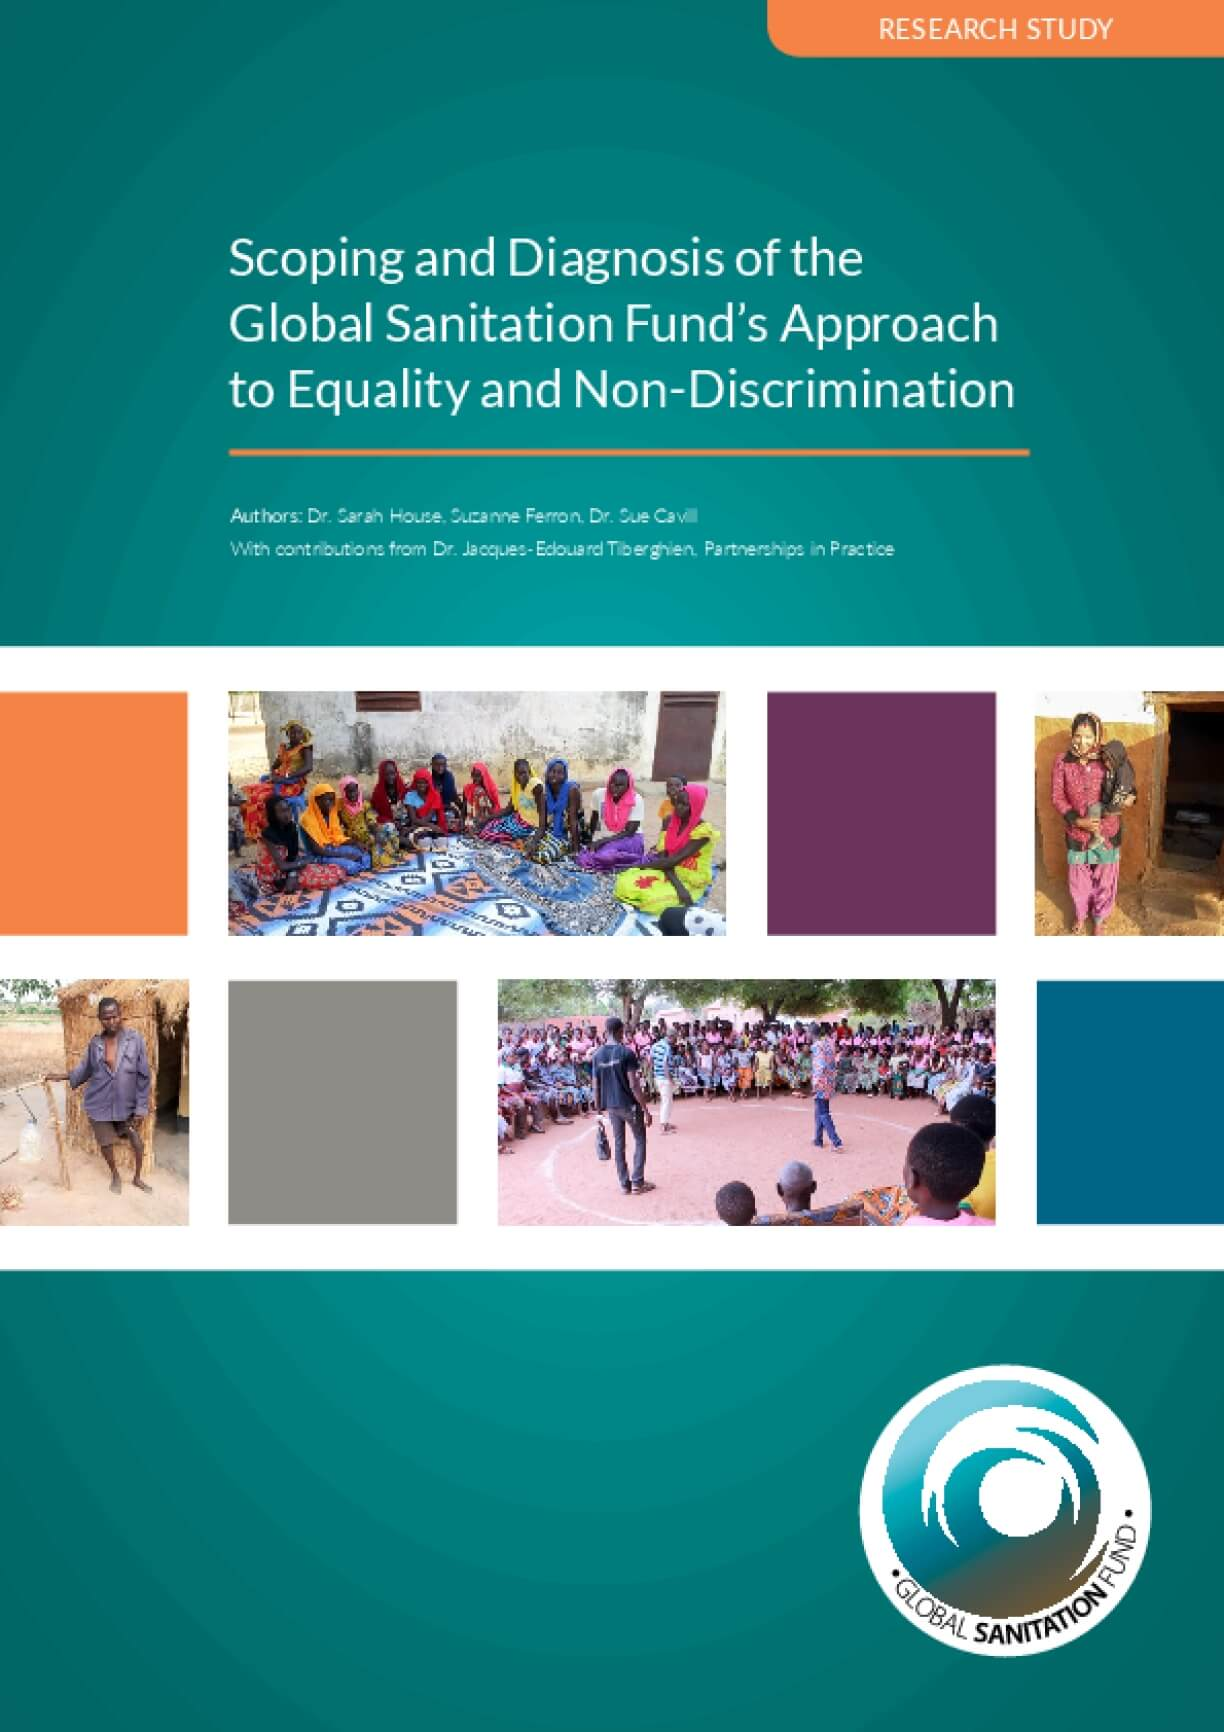 Scoping and Diagnosis of the Global Sanitation Fund's Approach to Equality and Non-Discrimination